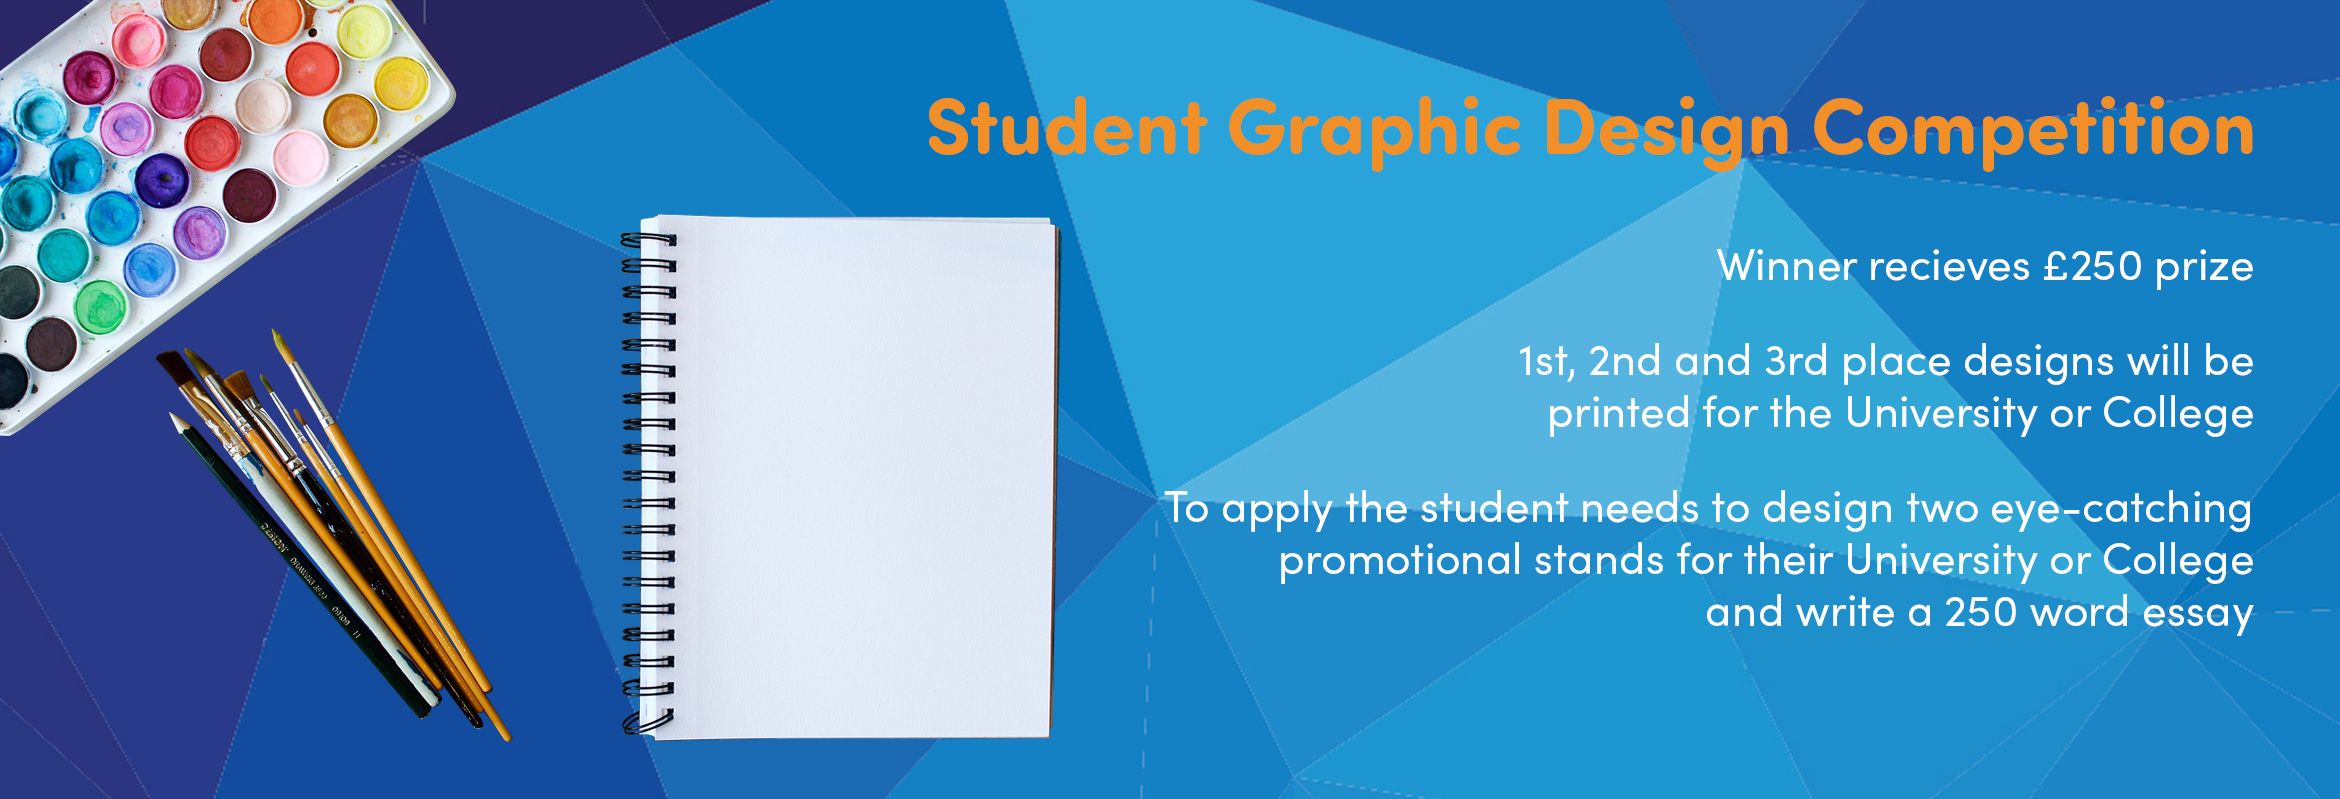 Student Graphic Design Competition